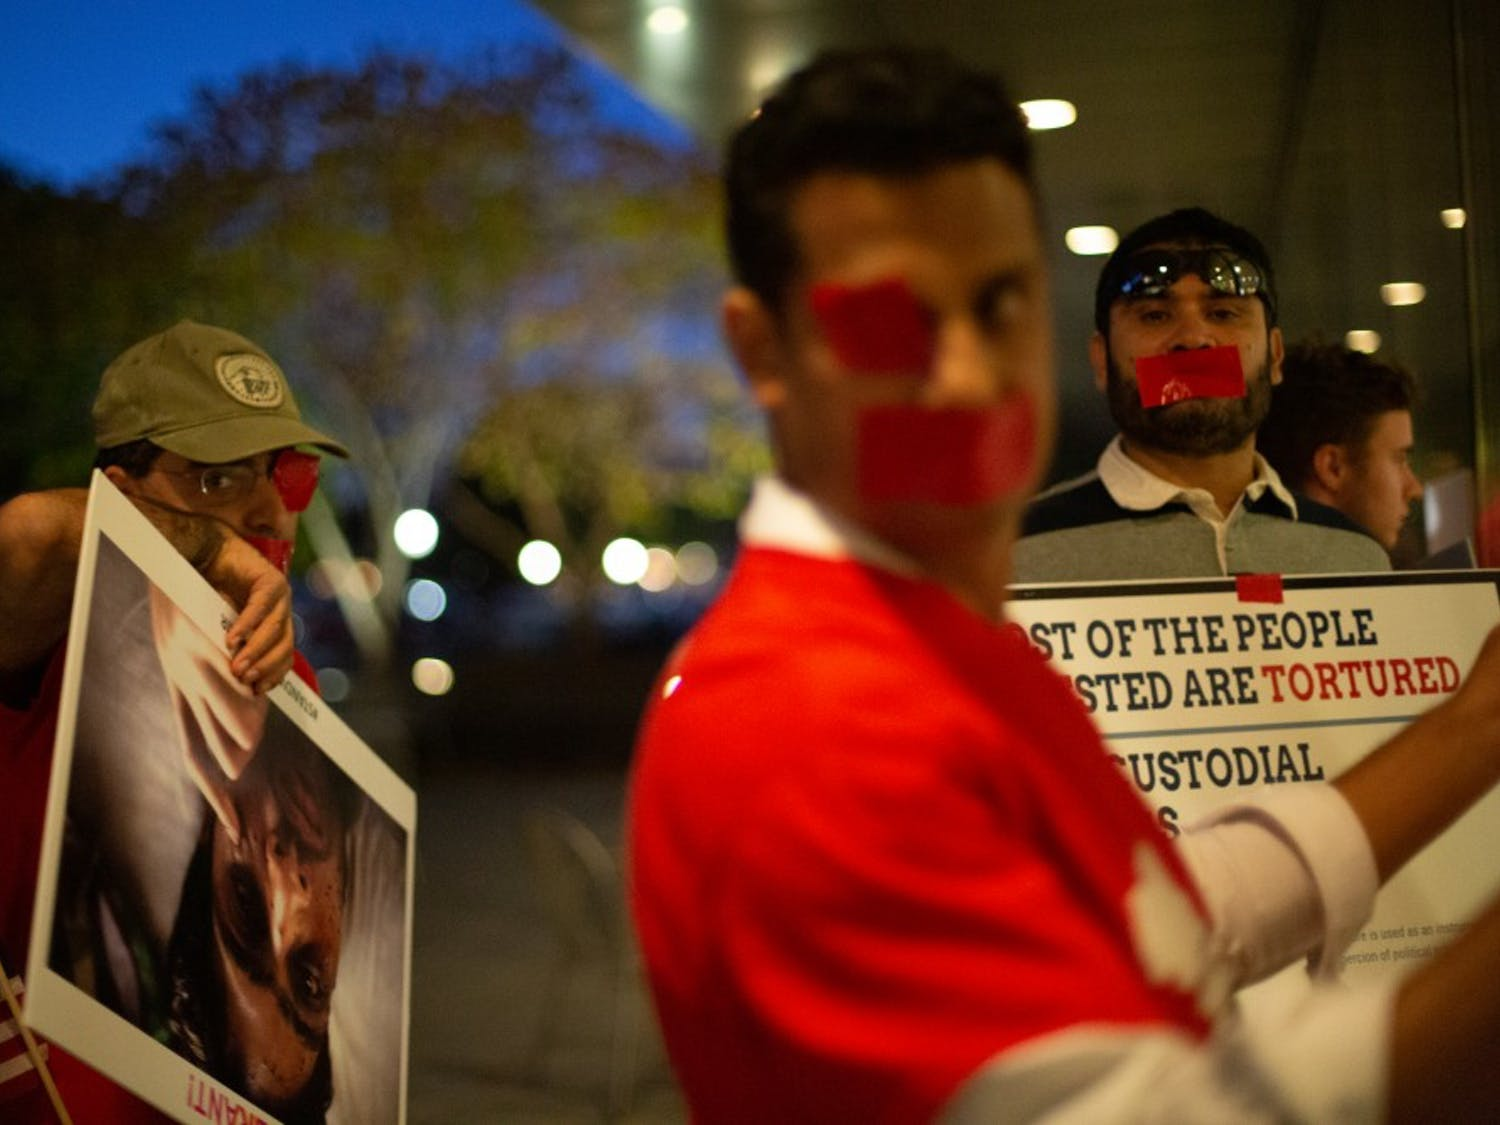 """Pro-Kashmiri demonstrators, who declined to be identified, gather outside the Global Education Center to protest the arrival of Harsh Vardhan Shringla, the ambassador from India to the United States, at the invitation of the Krasno Event Series on Friday, Oct. 10, 2019. The group accuses India of perpetrating human rights abuses against the """"semi-autonomous"""" region of Kashmir. """"I think this event is a political event, which Indian ambassador is trying to project lies inside about their atrocities in Kashmir and talking of India as a trade partner and asking U.S. to do a strategic partnership,"""" one protestor says."""